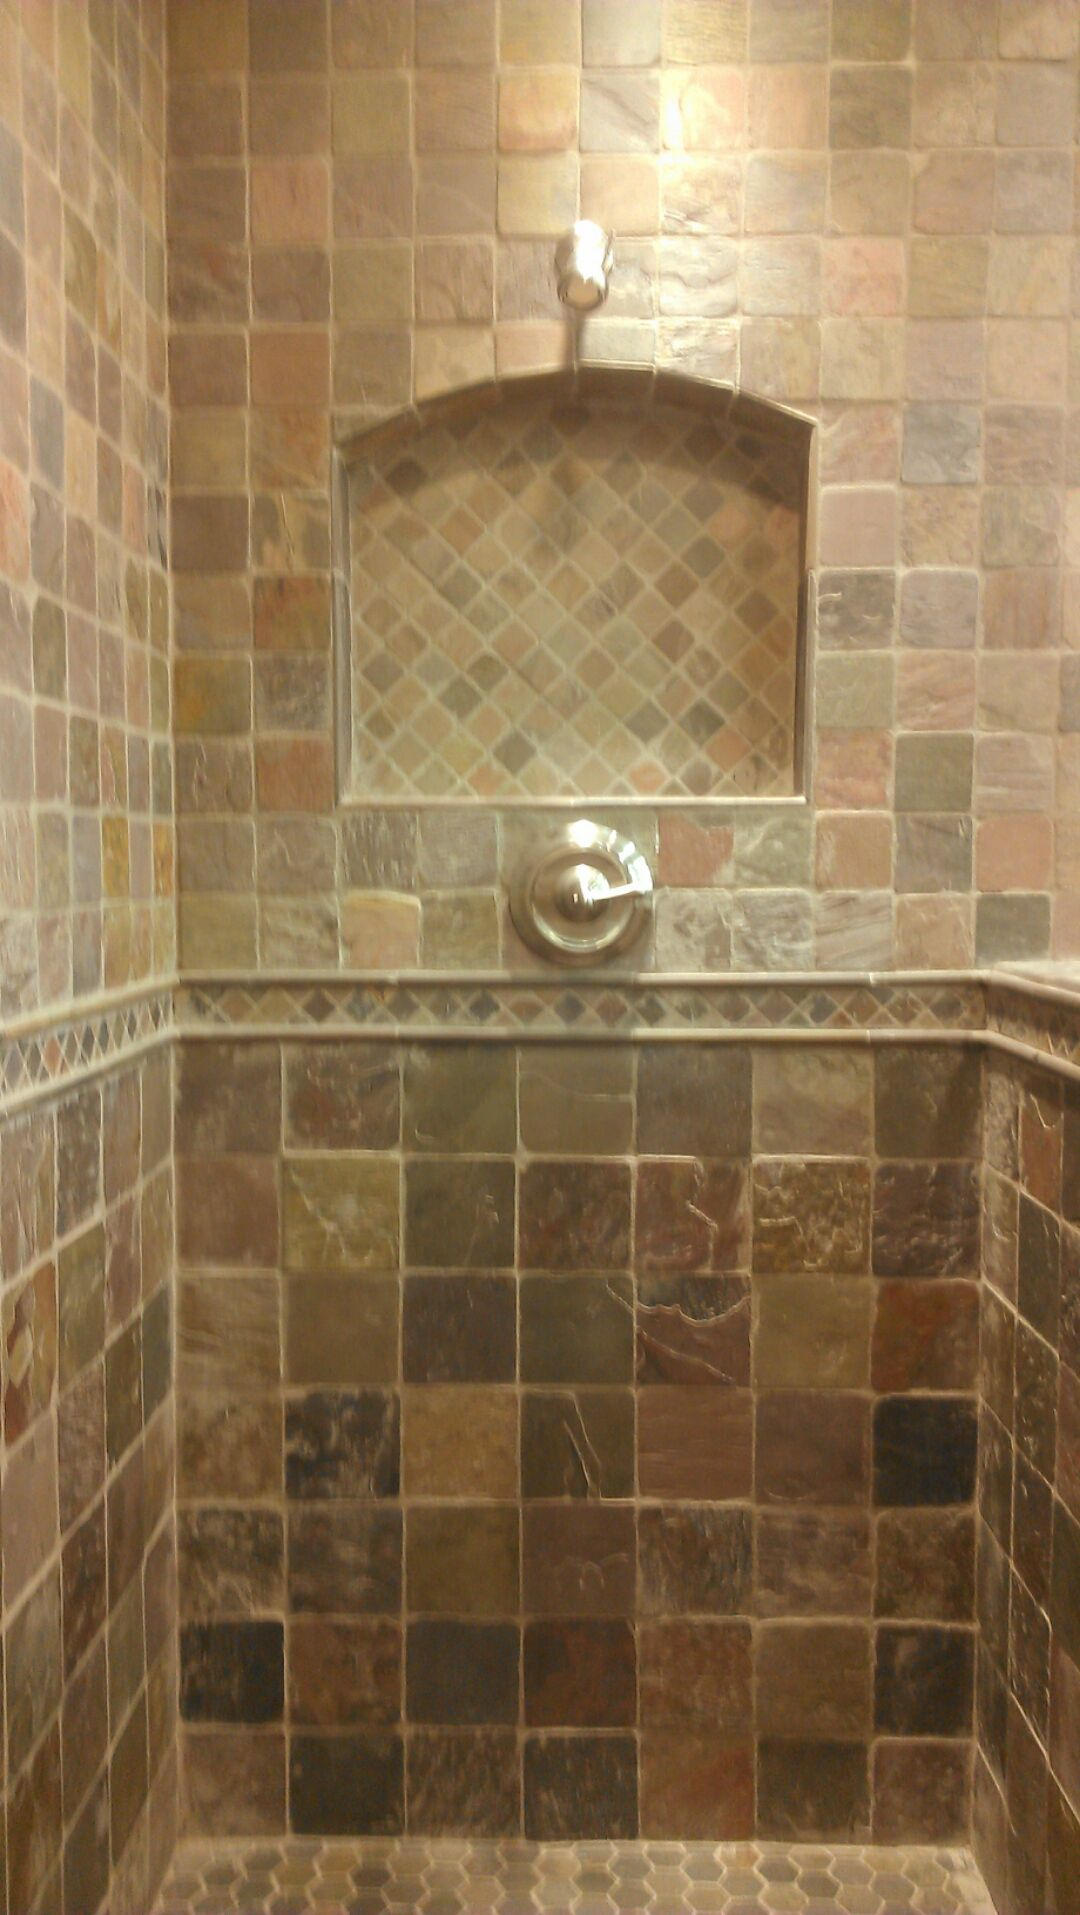 Shower niche designs travertine shower with a niche and for Travertine tile designs